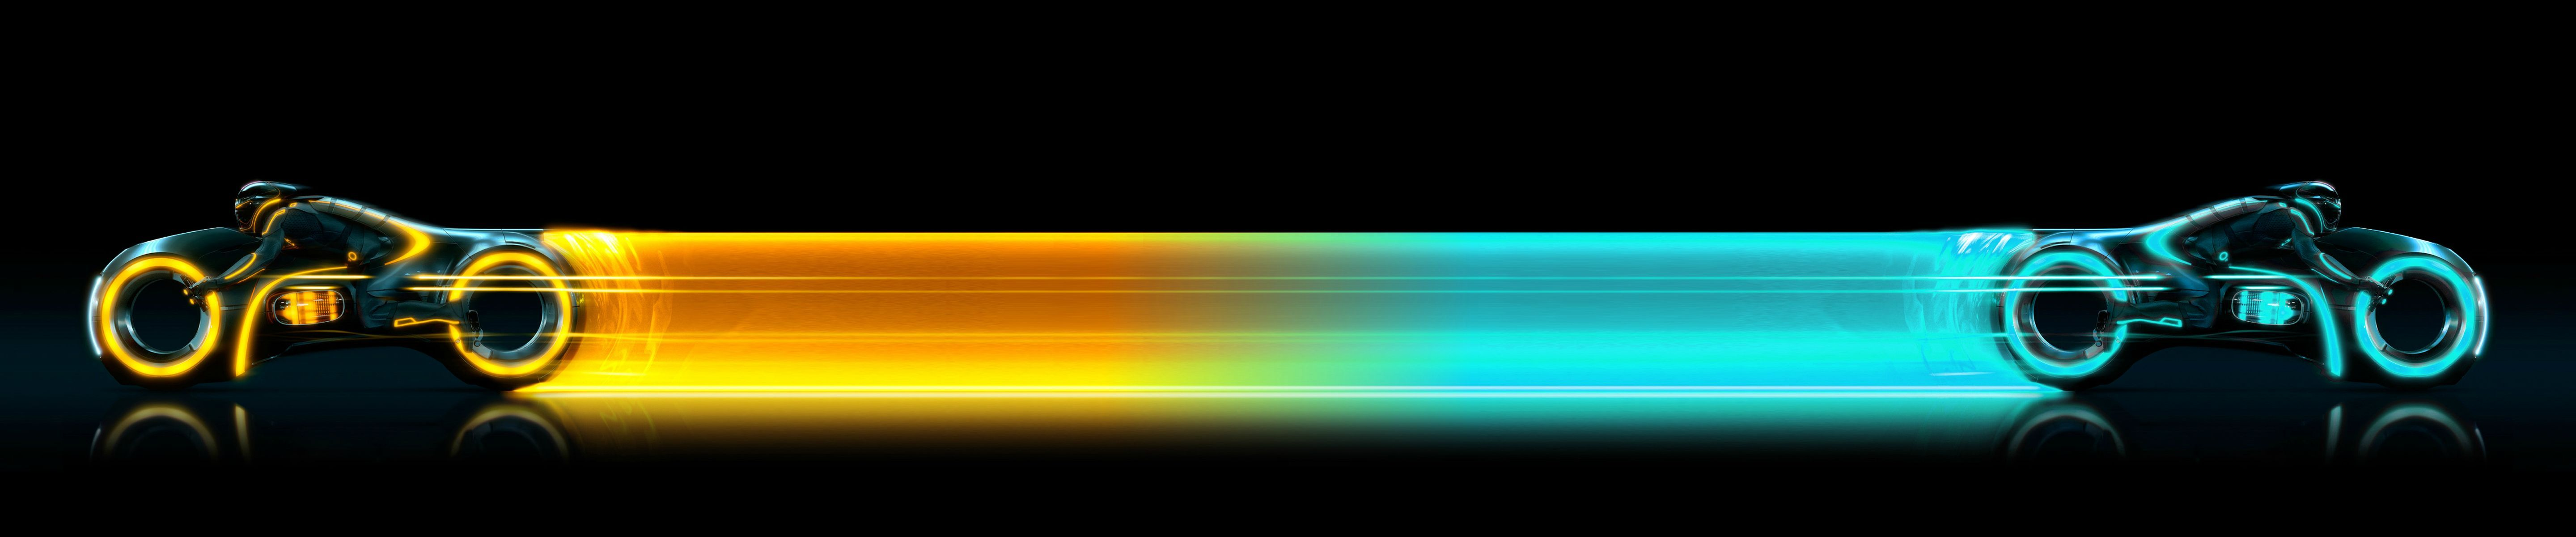 Tron Legacy Eyefinity Wallpapers Wsgf Dual Monitor Wallpaper Hd Widescreen Wallpapers Hd Cool Wallpapers